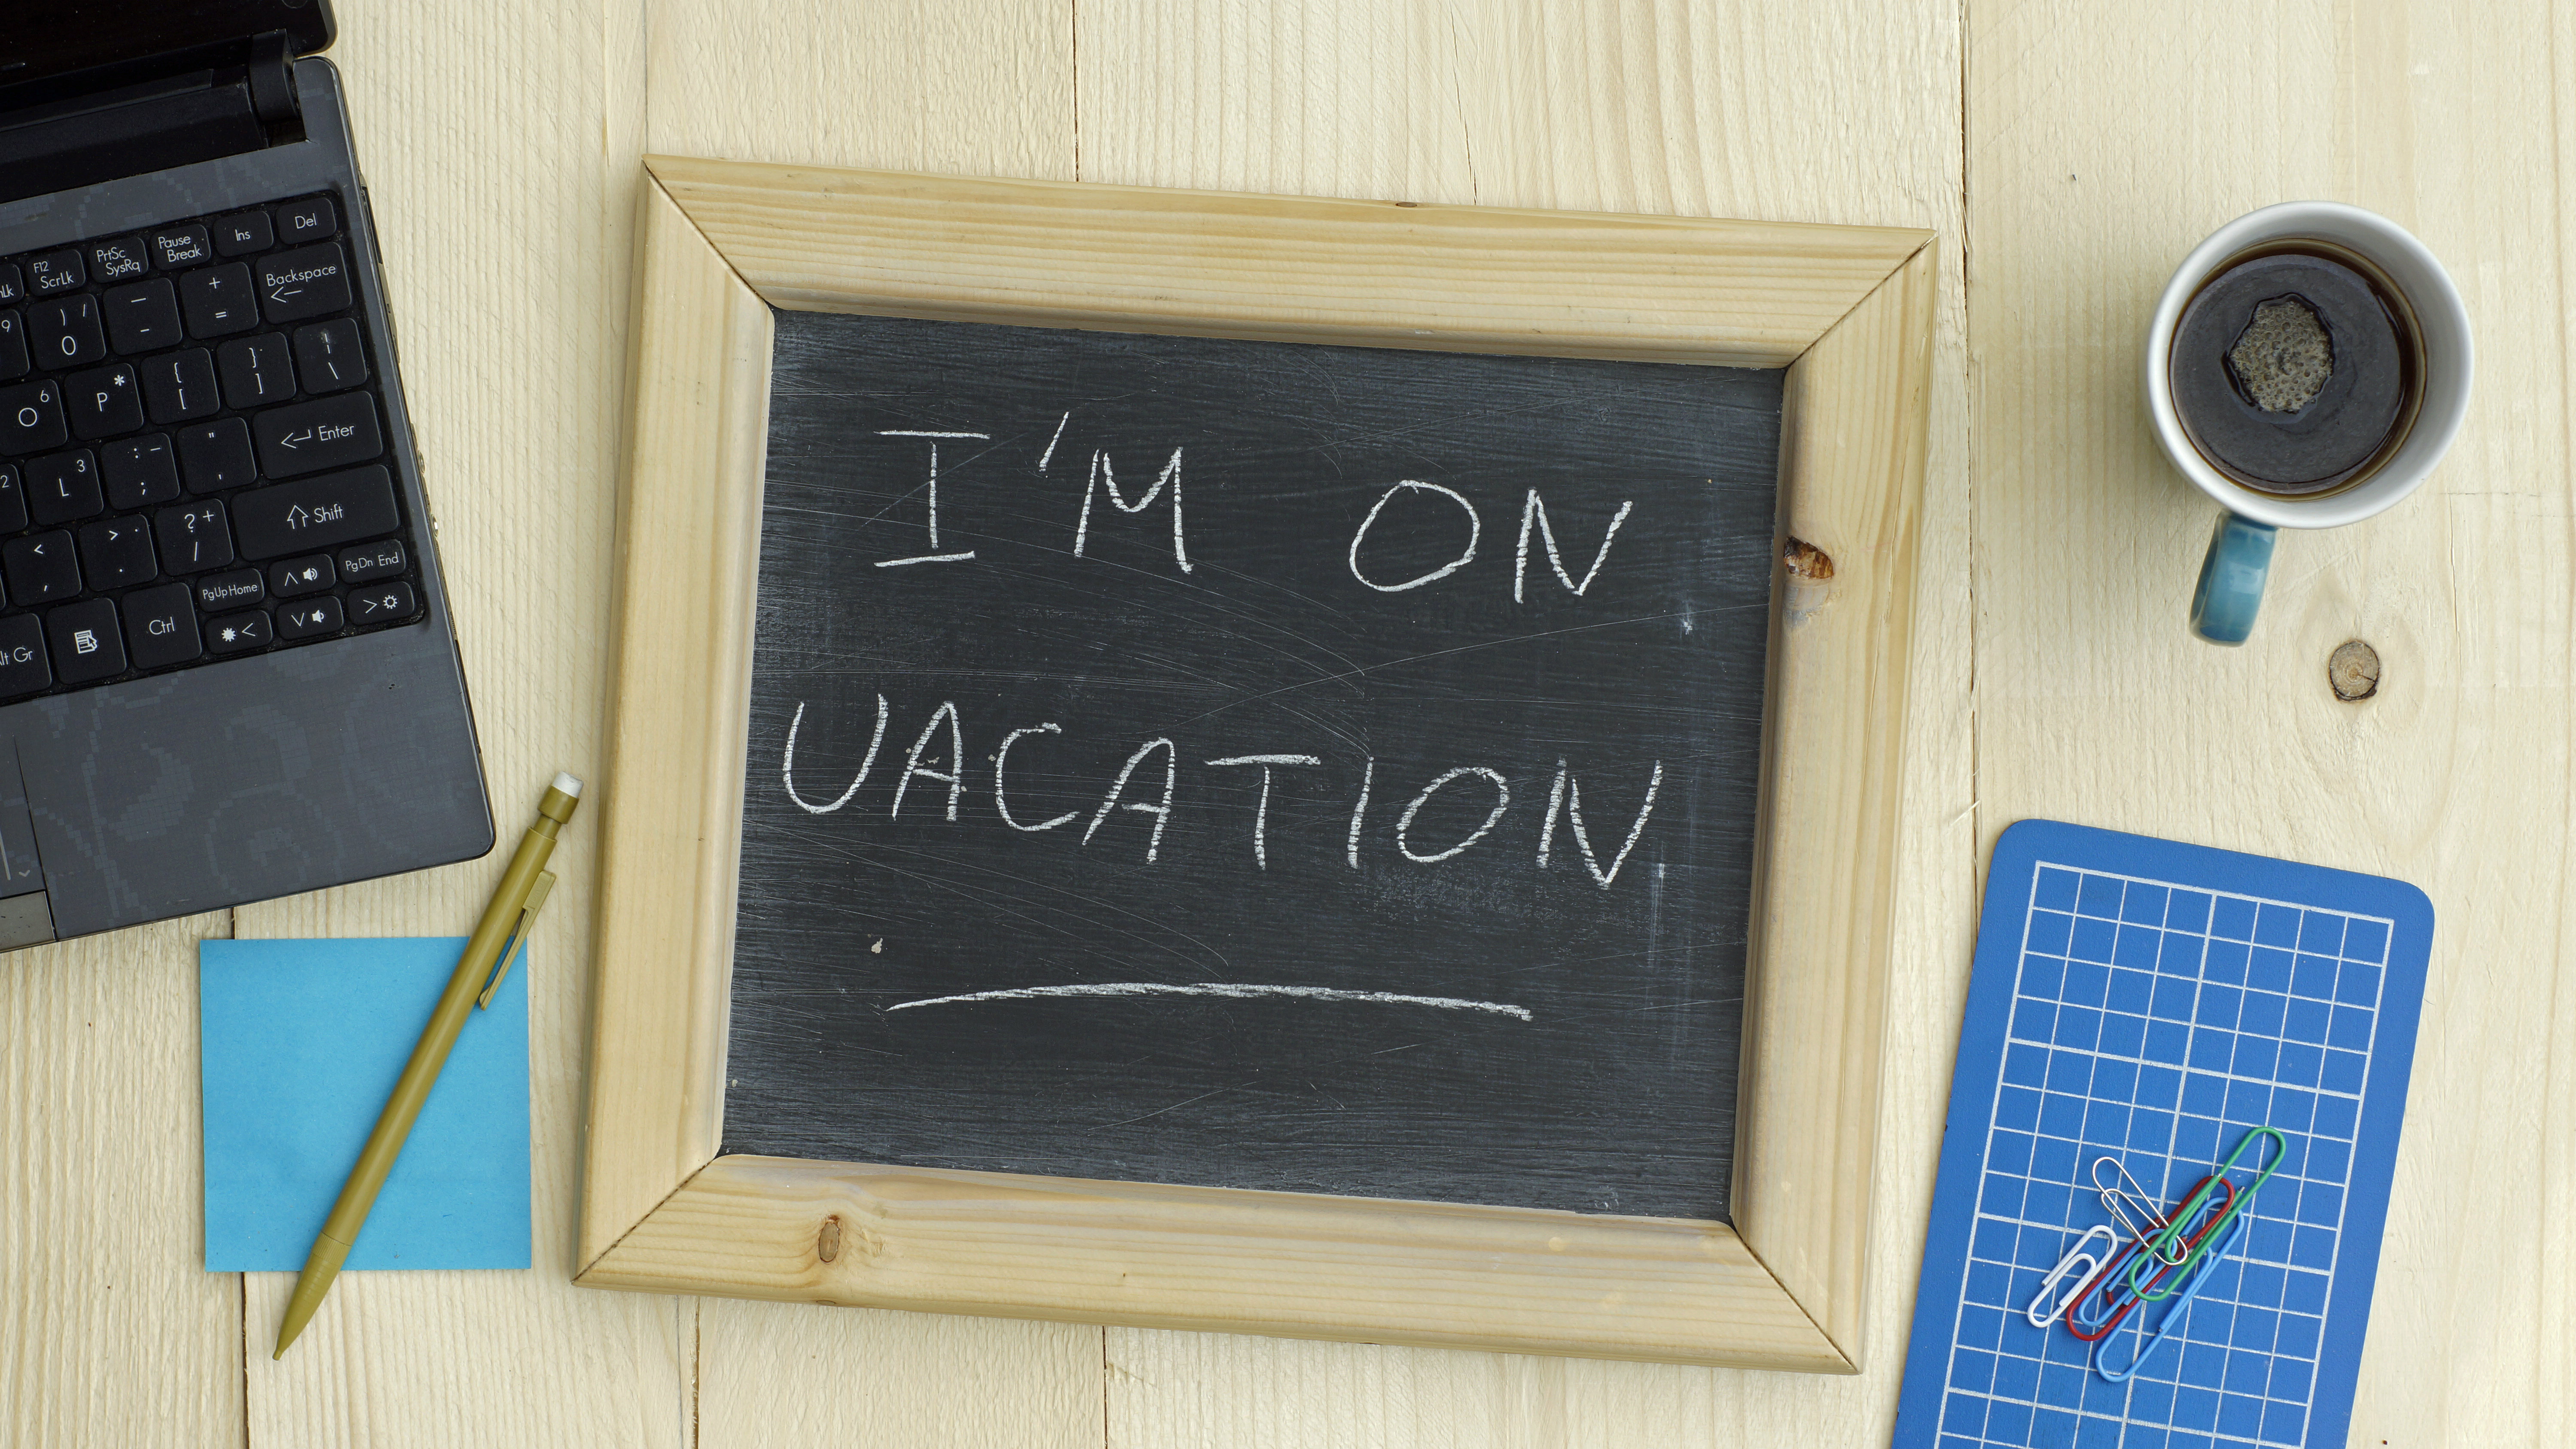 I'm on vacation written on a chalkboard at the office